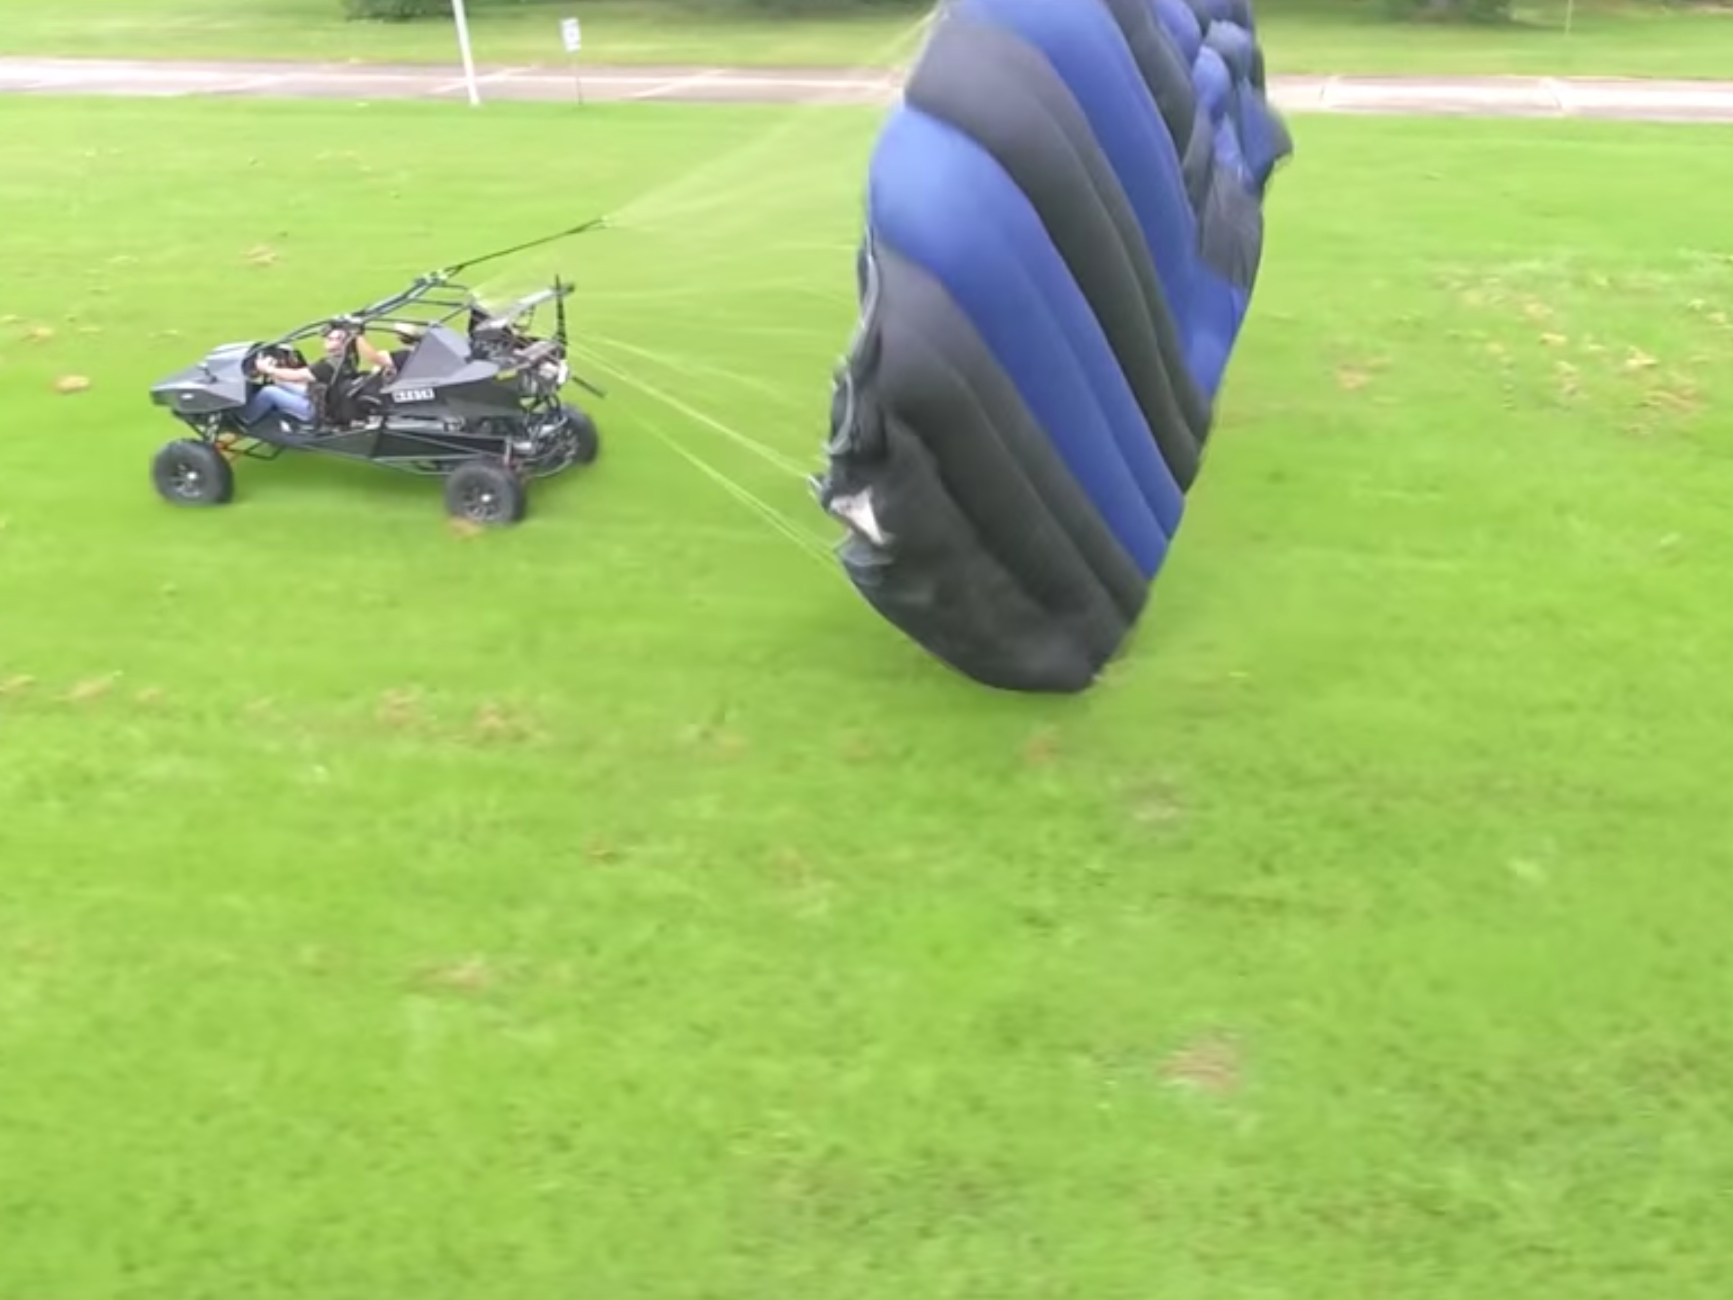 The FAA Just Approved This Completely Insane Flying Dune Buggy as a Light Sport Aircraft